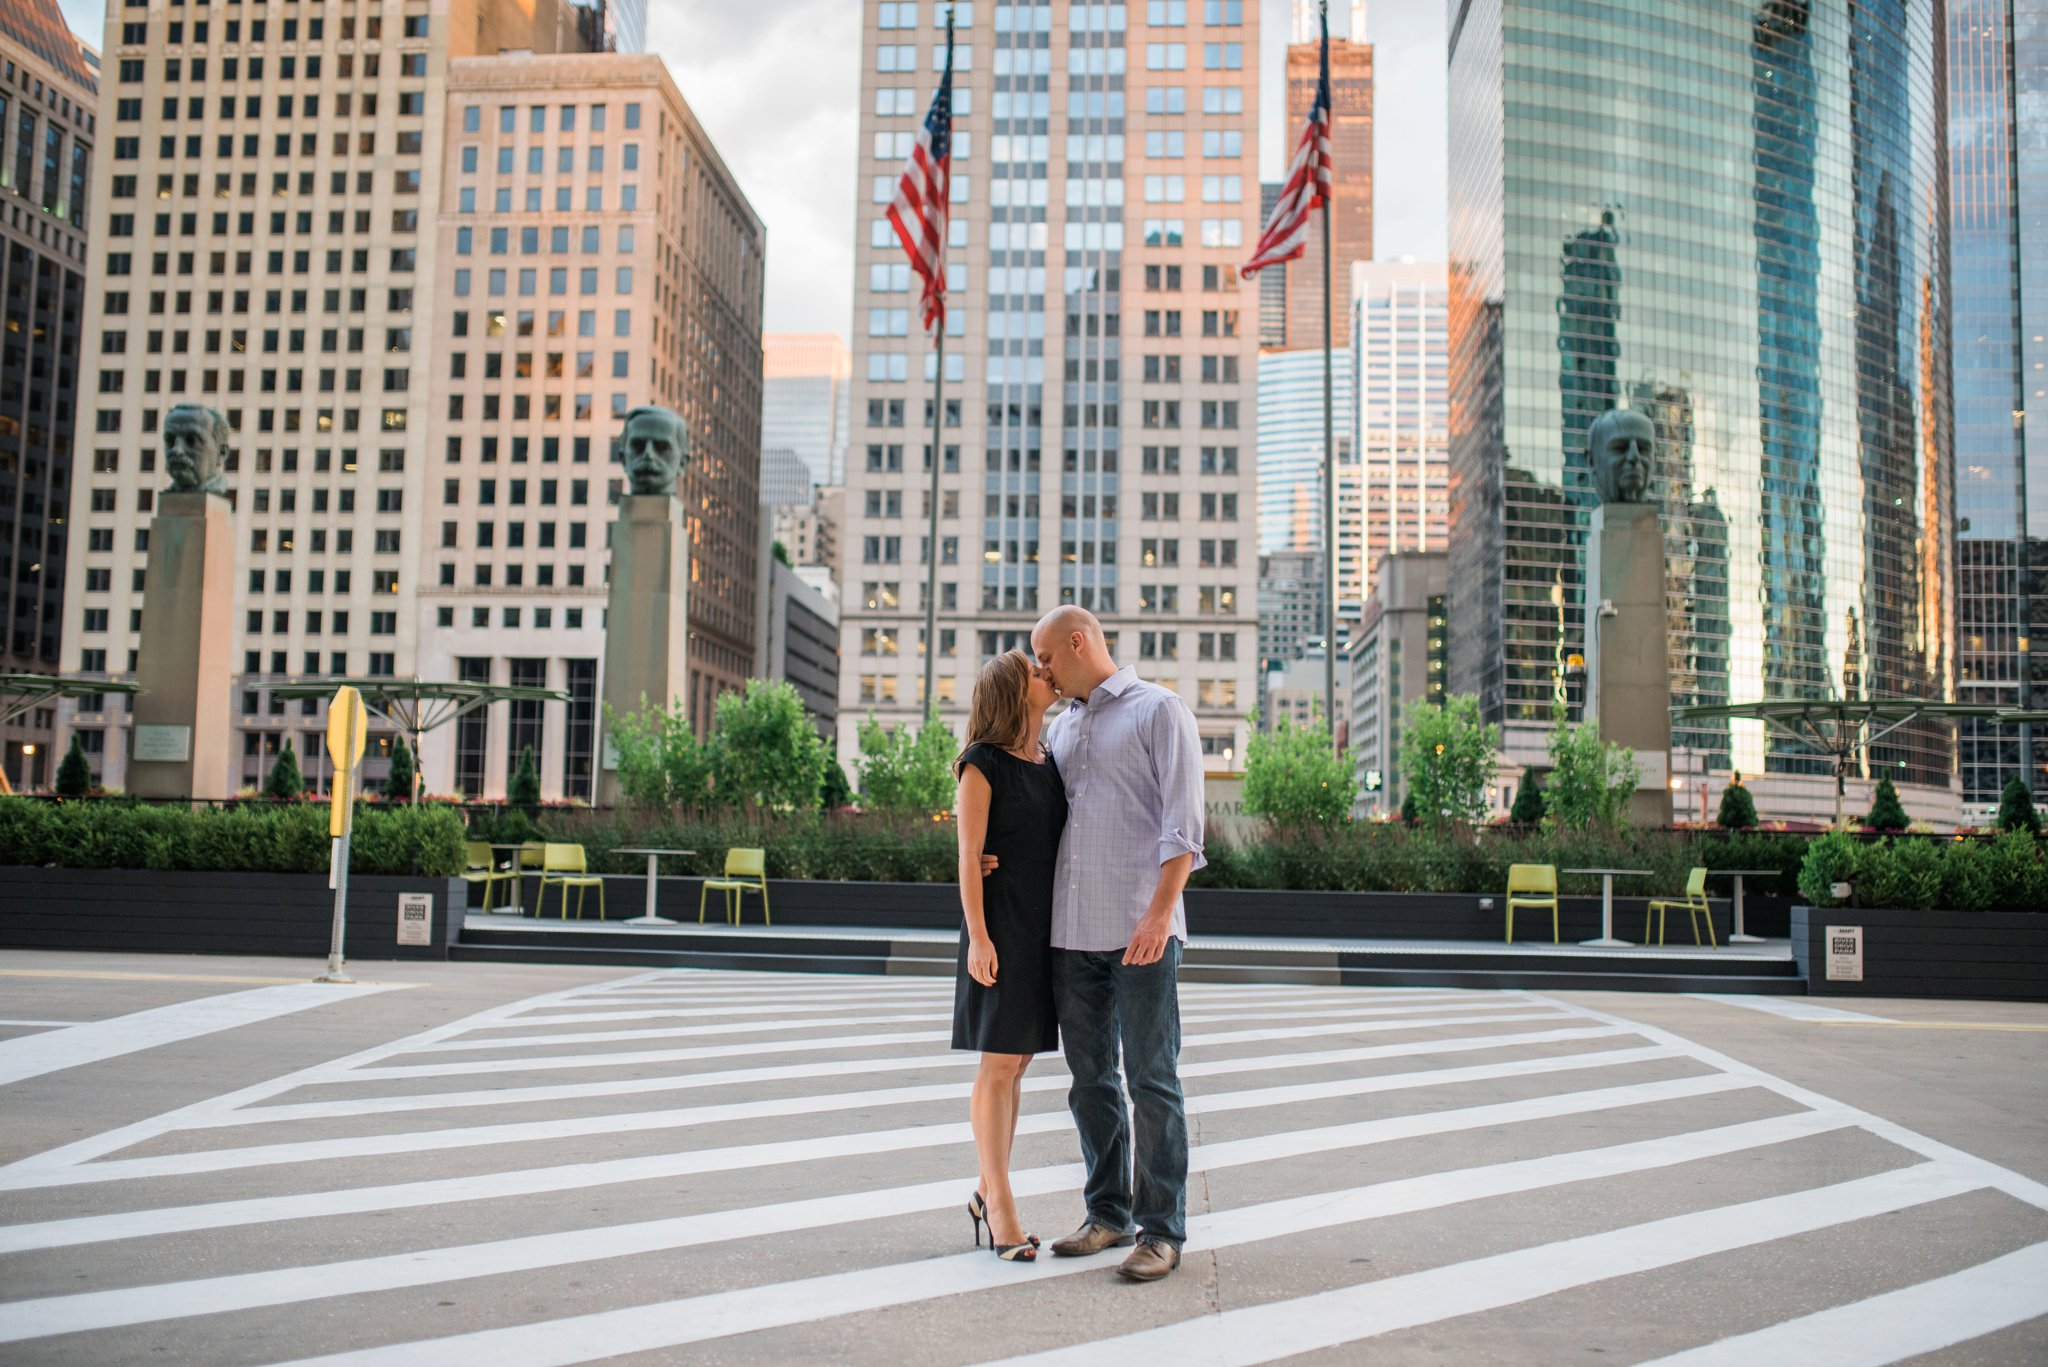 Downtown-Chicago-Loop-Wedding-Photography-059.jpg